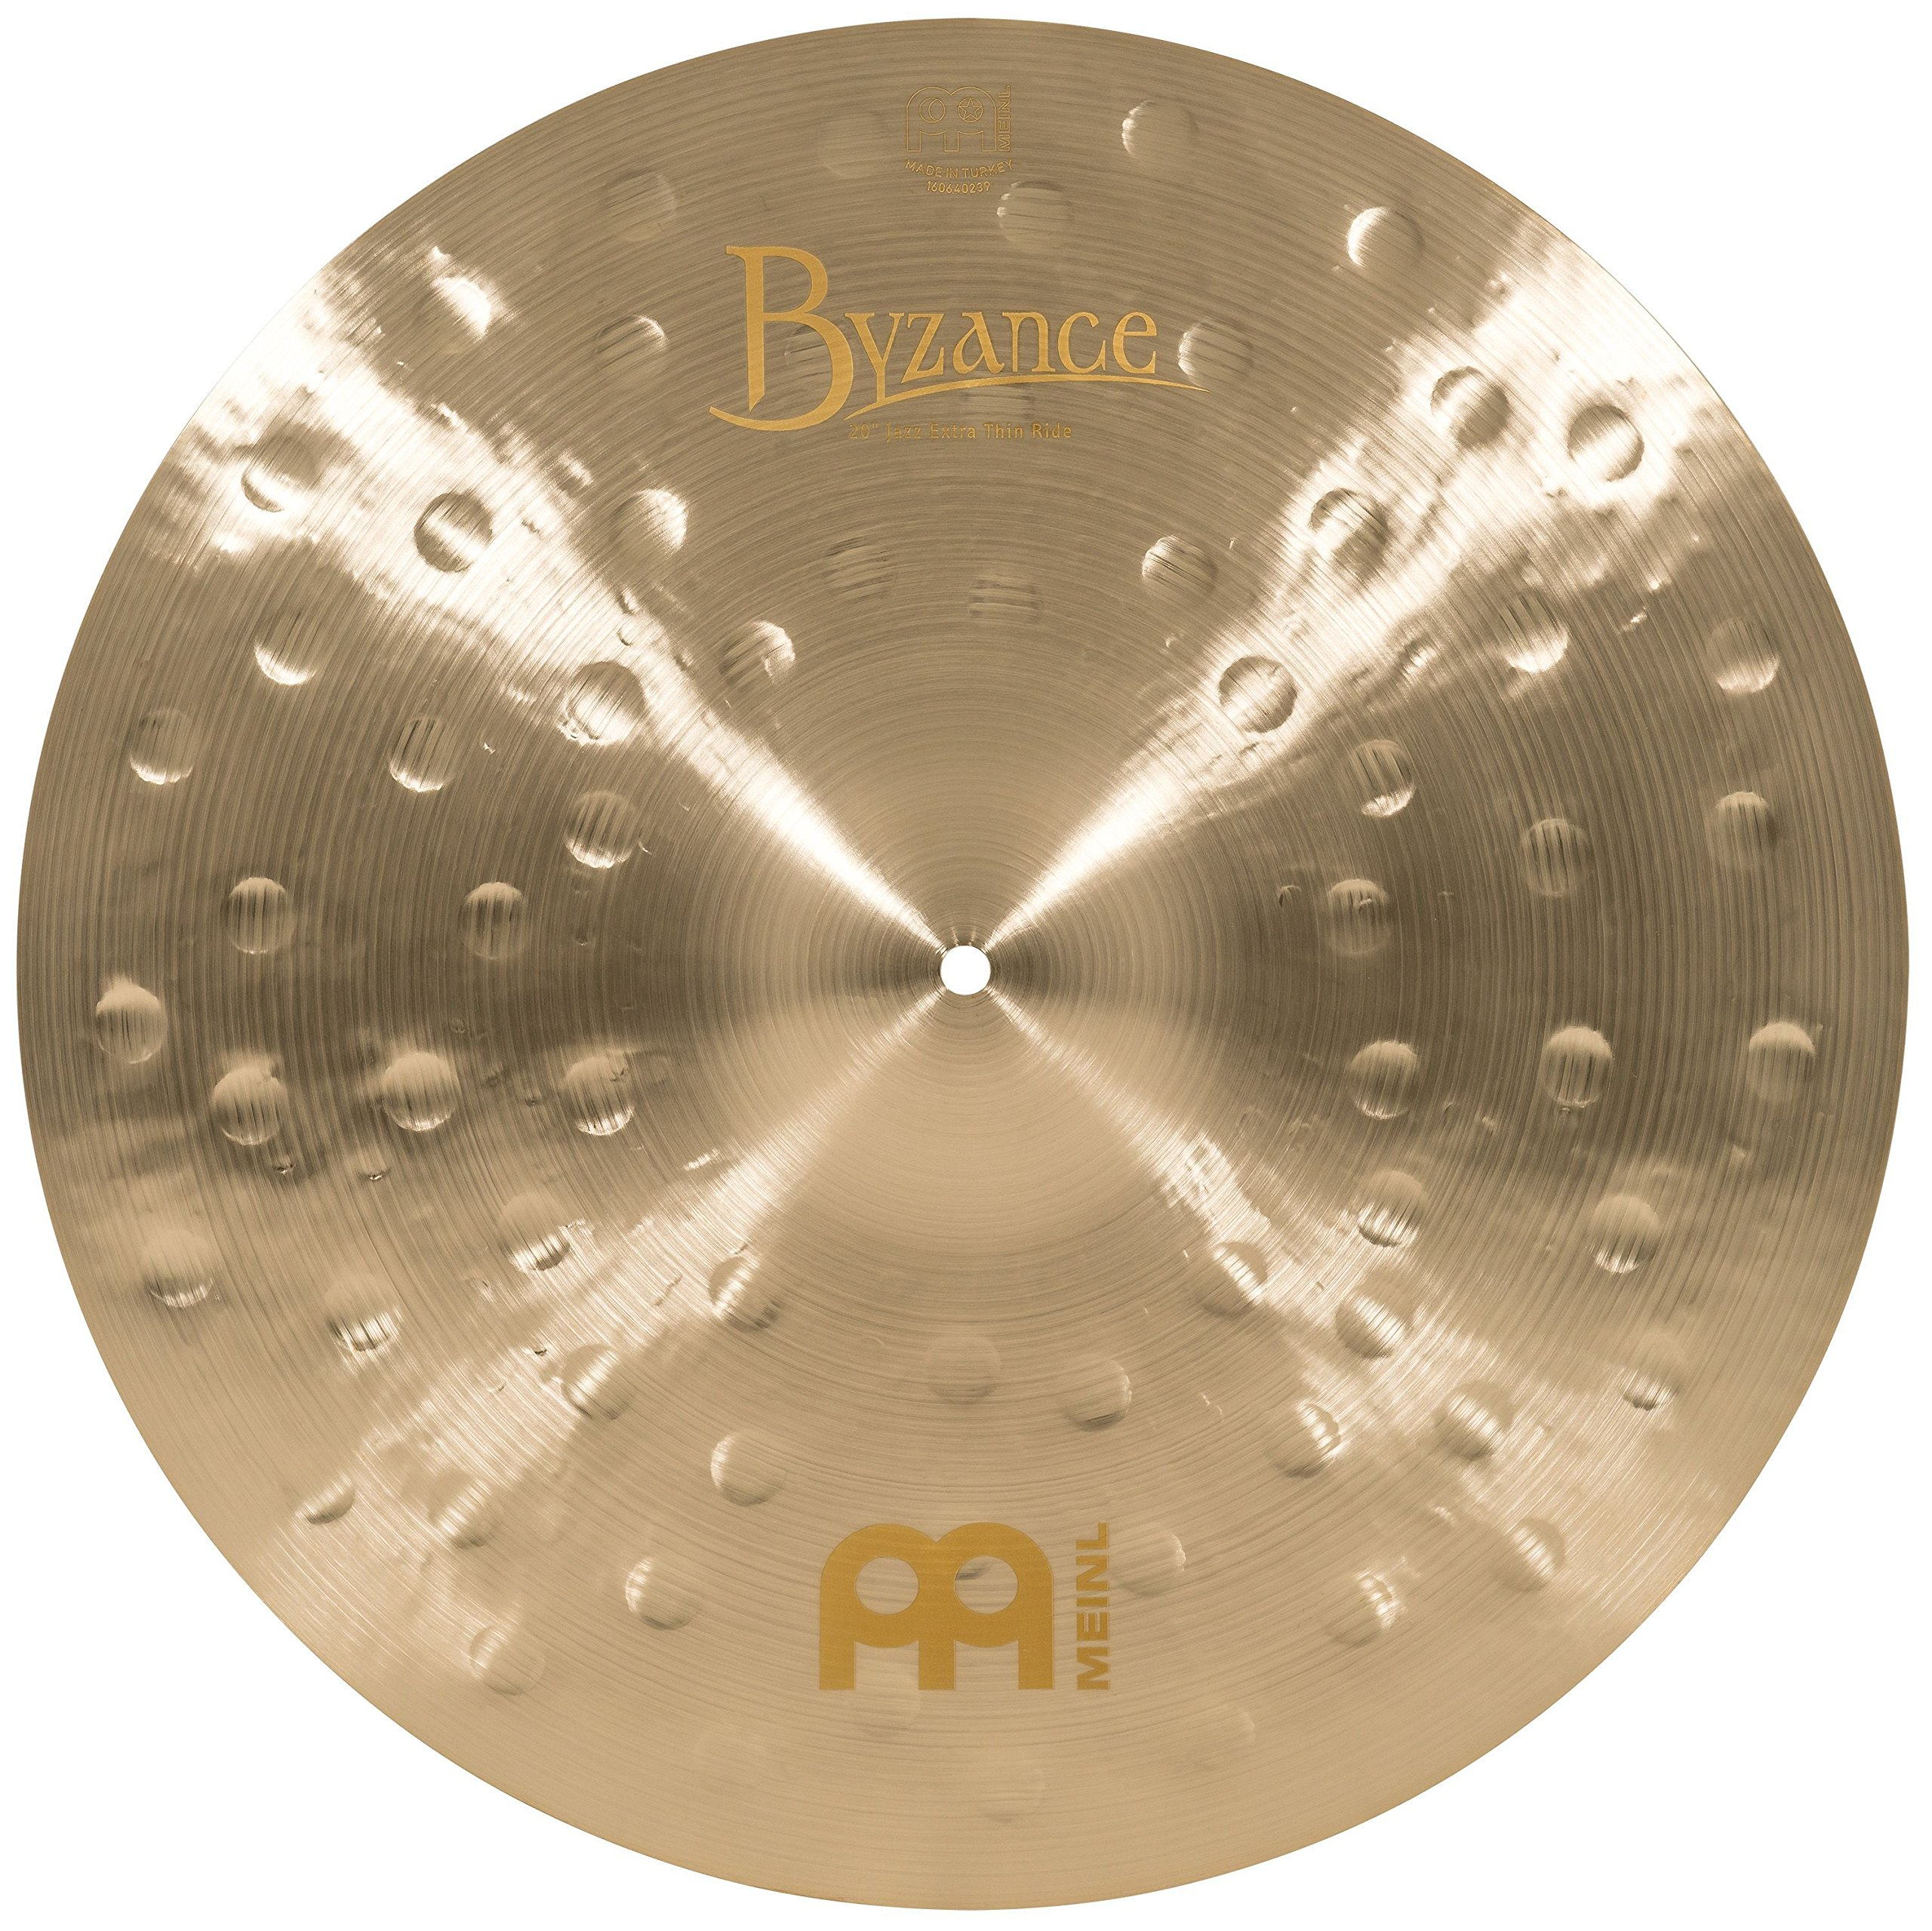 Meinl Cymbals B20JETR Byzance 20-Inch Jazz Extra Thin Ride Cymbal (VIDEO) by Meinl Cymbals